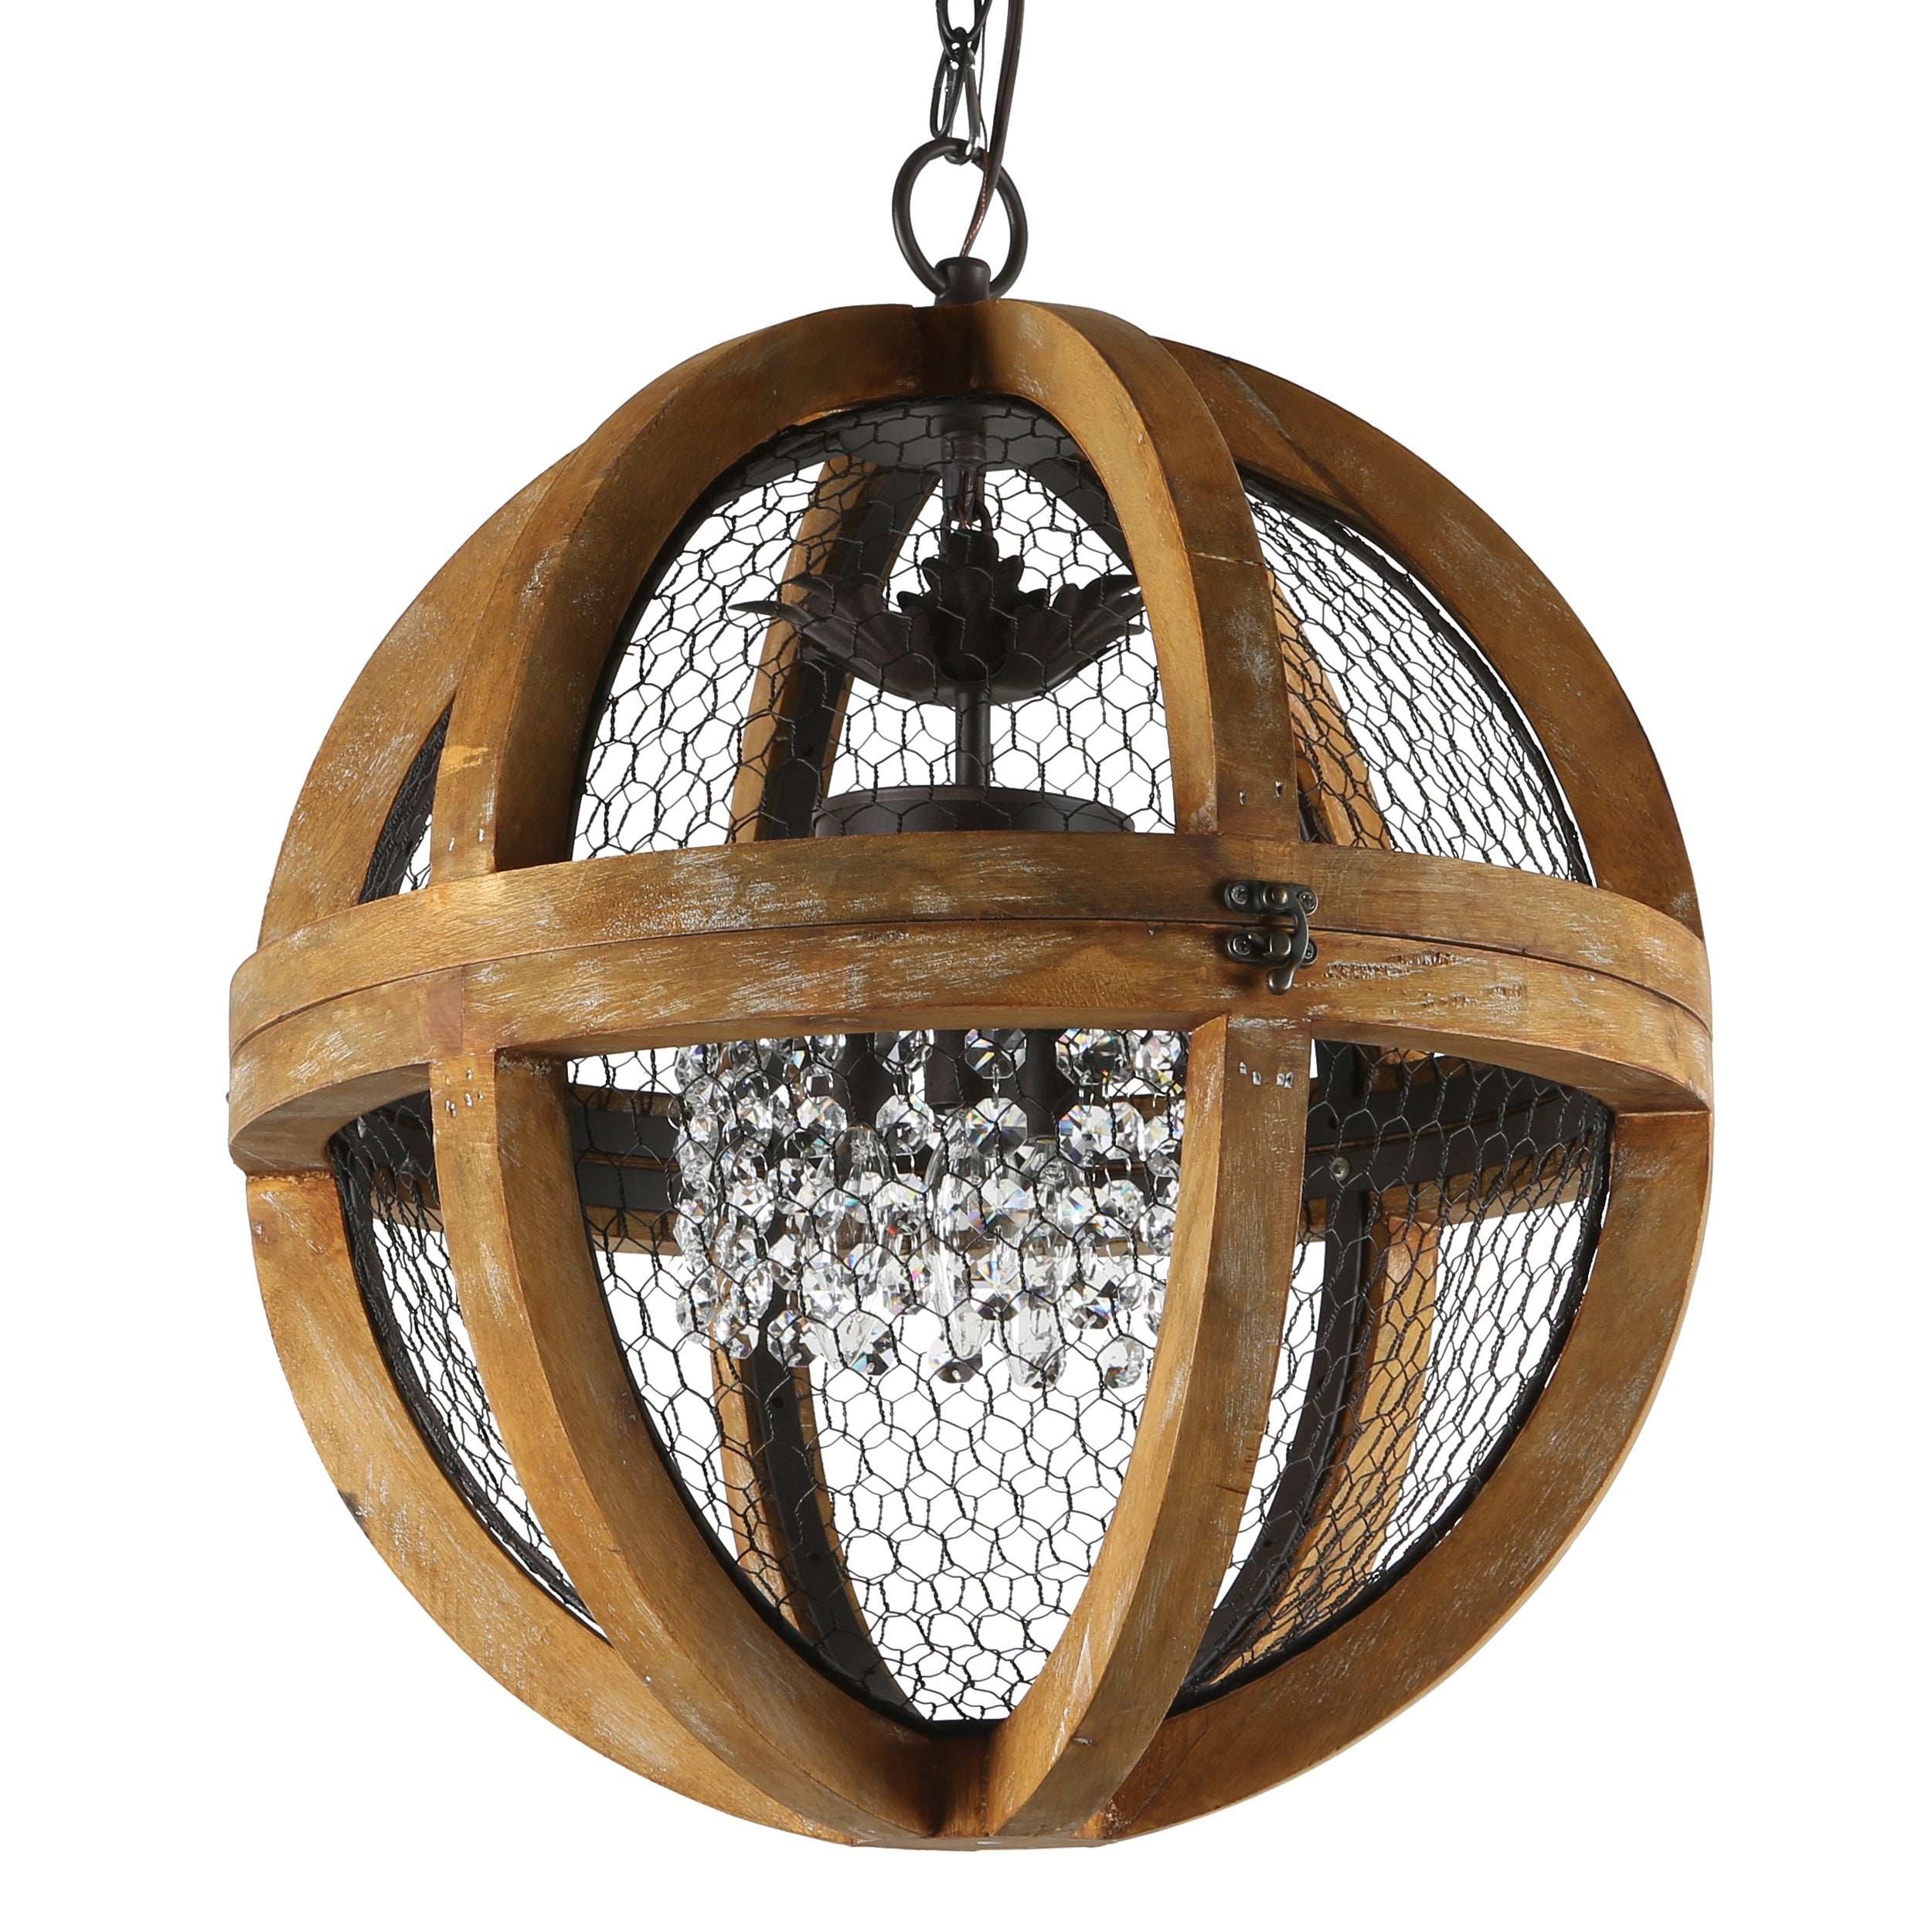 journee lighting. Journee Collection Rimini Wood/Iron/Acrylic 18-inch Hardwired Chandelier Lighting E